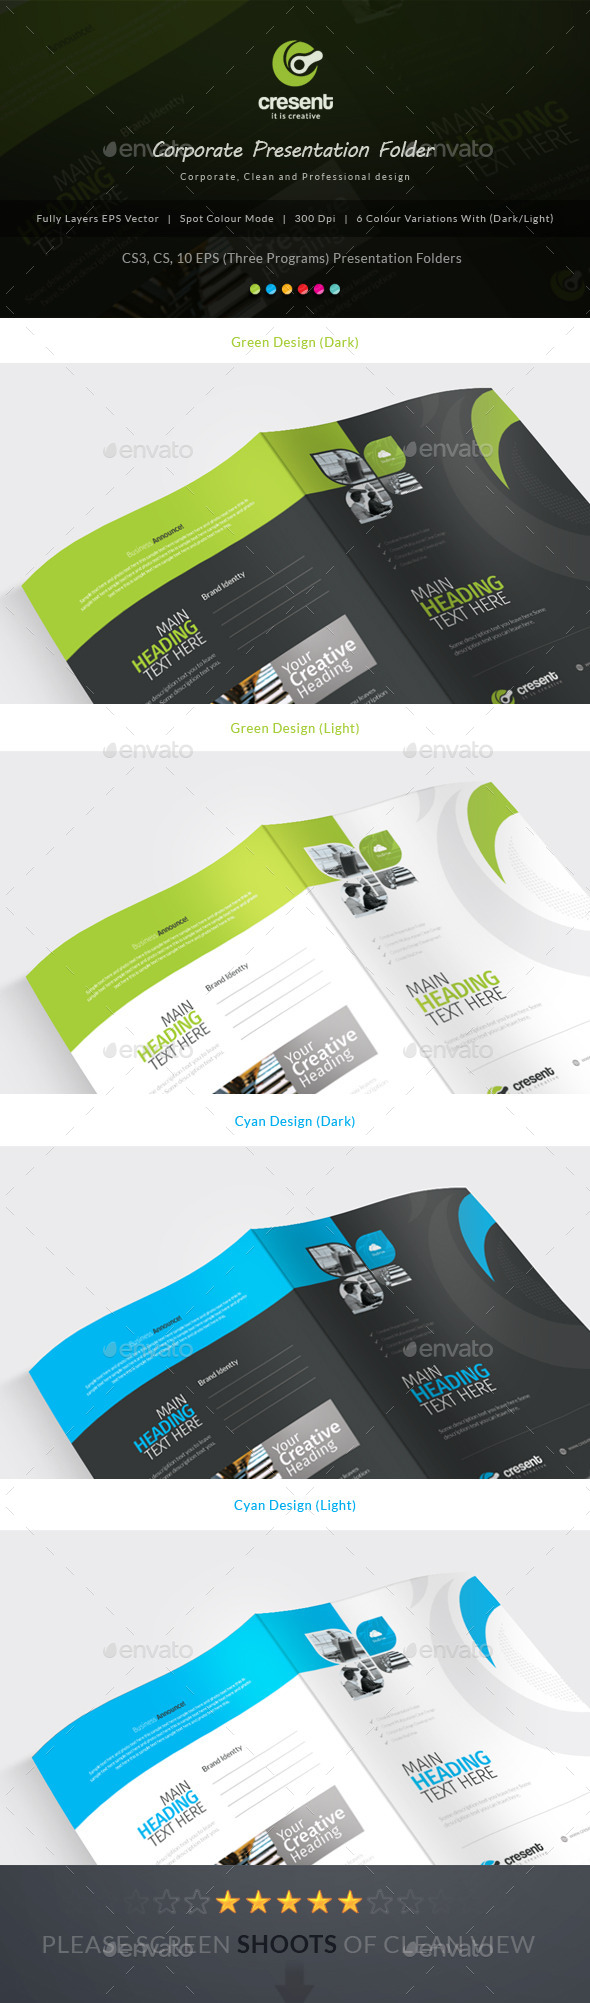 GraphicRiver Cresent Corporate Presentation Folder 10619638